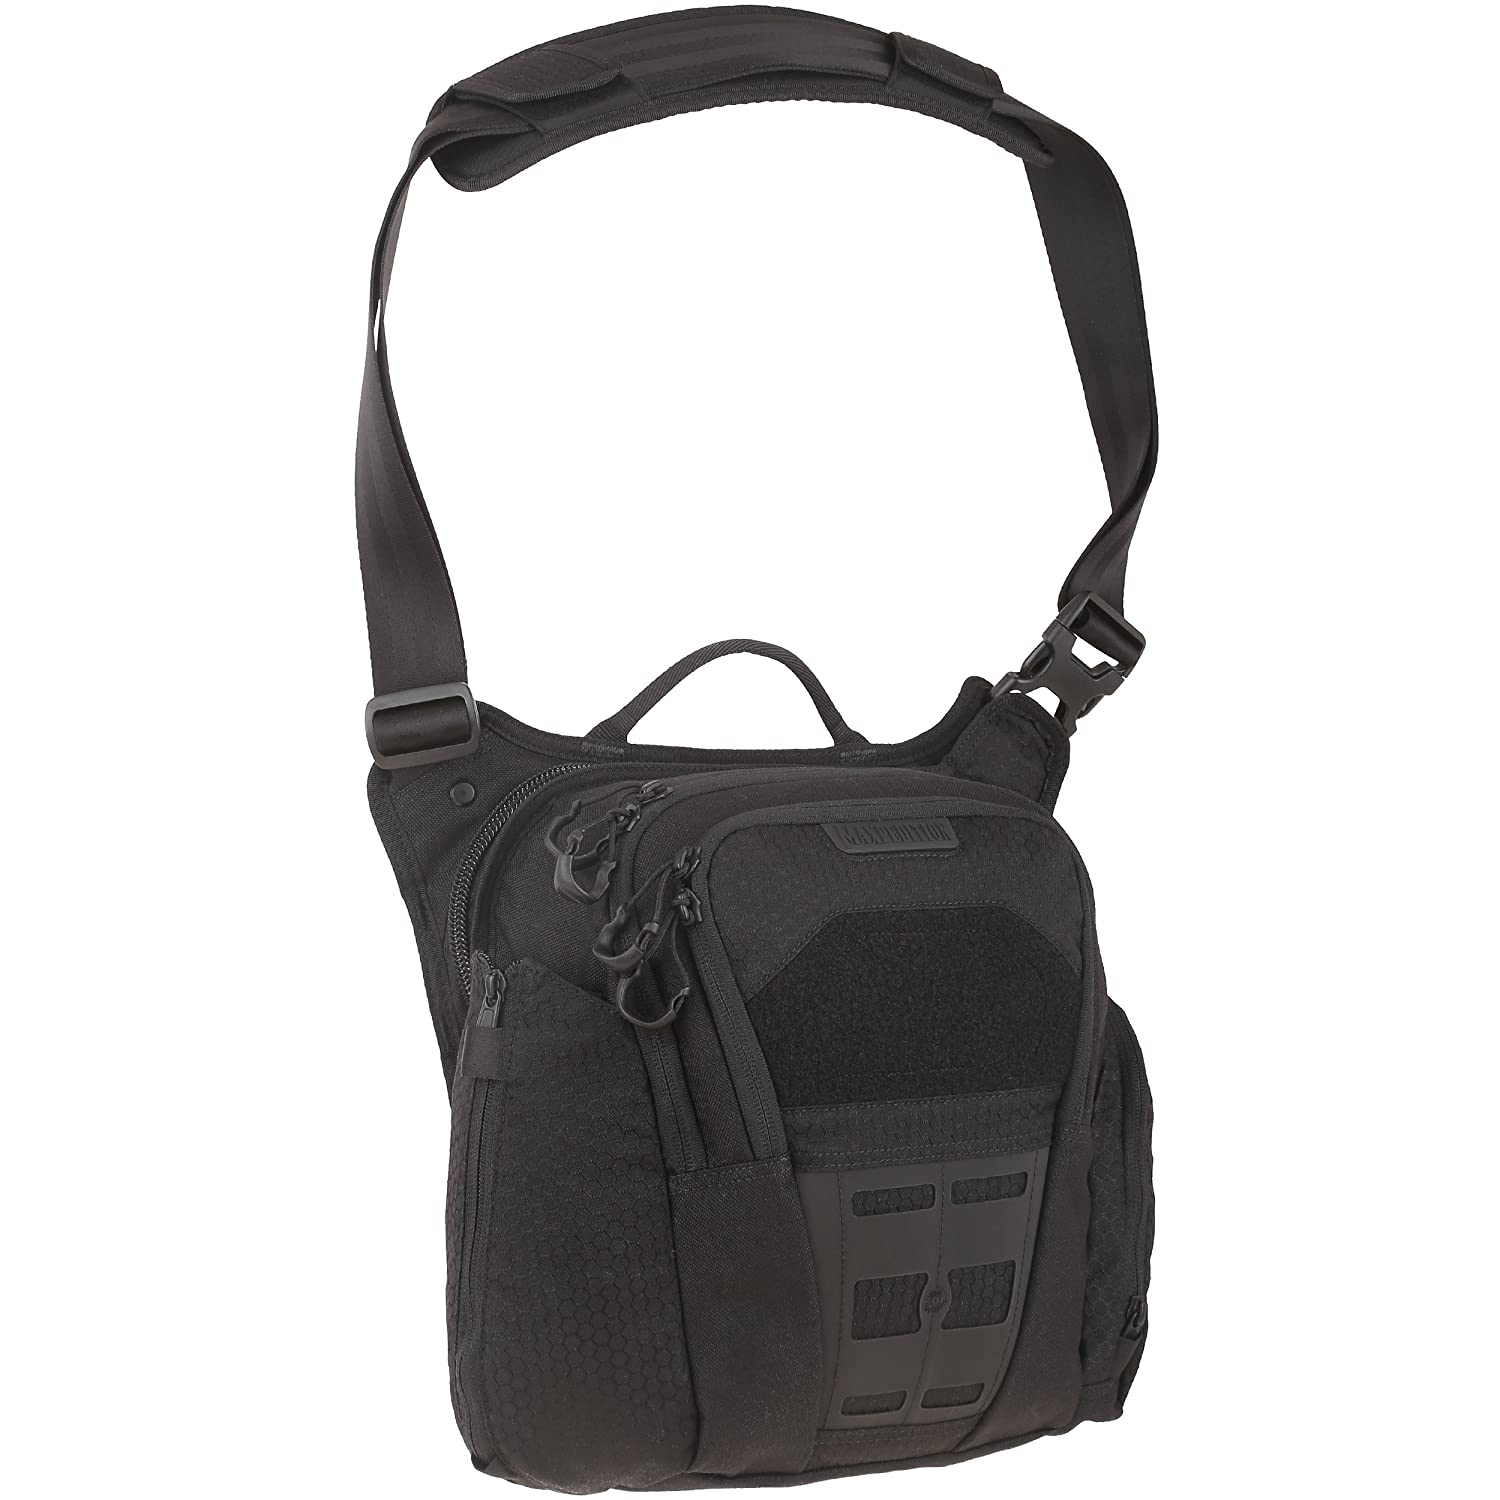 Maxpedition Veldspar Shoulder Bag, Black